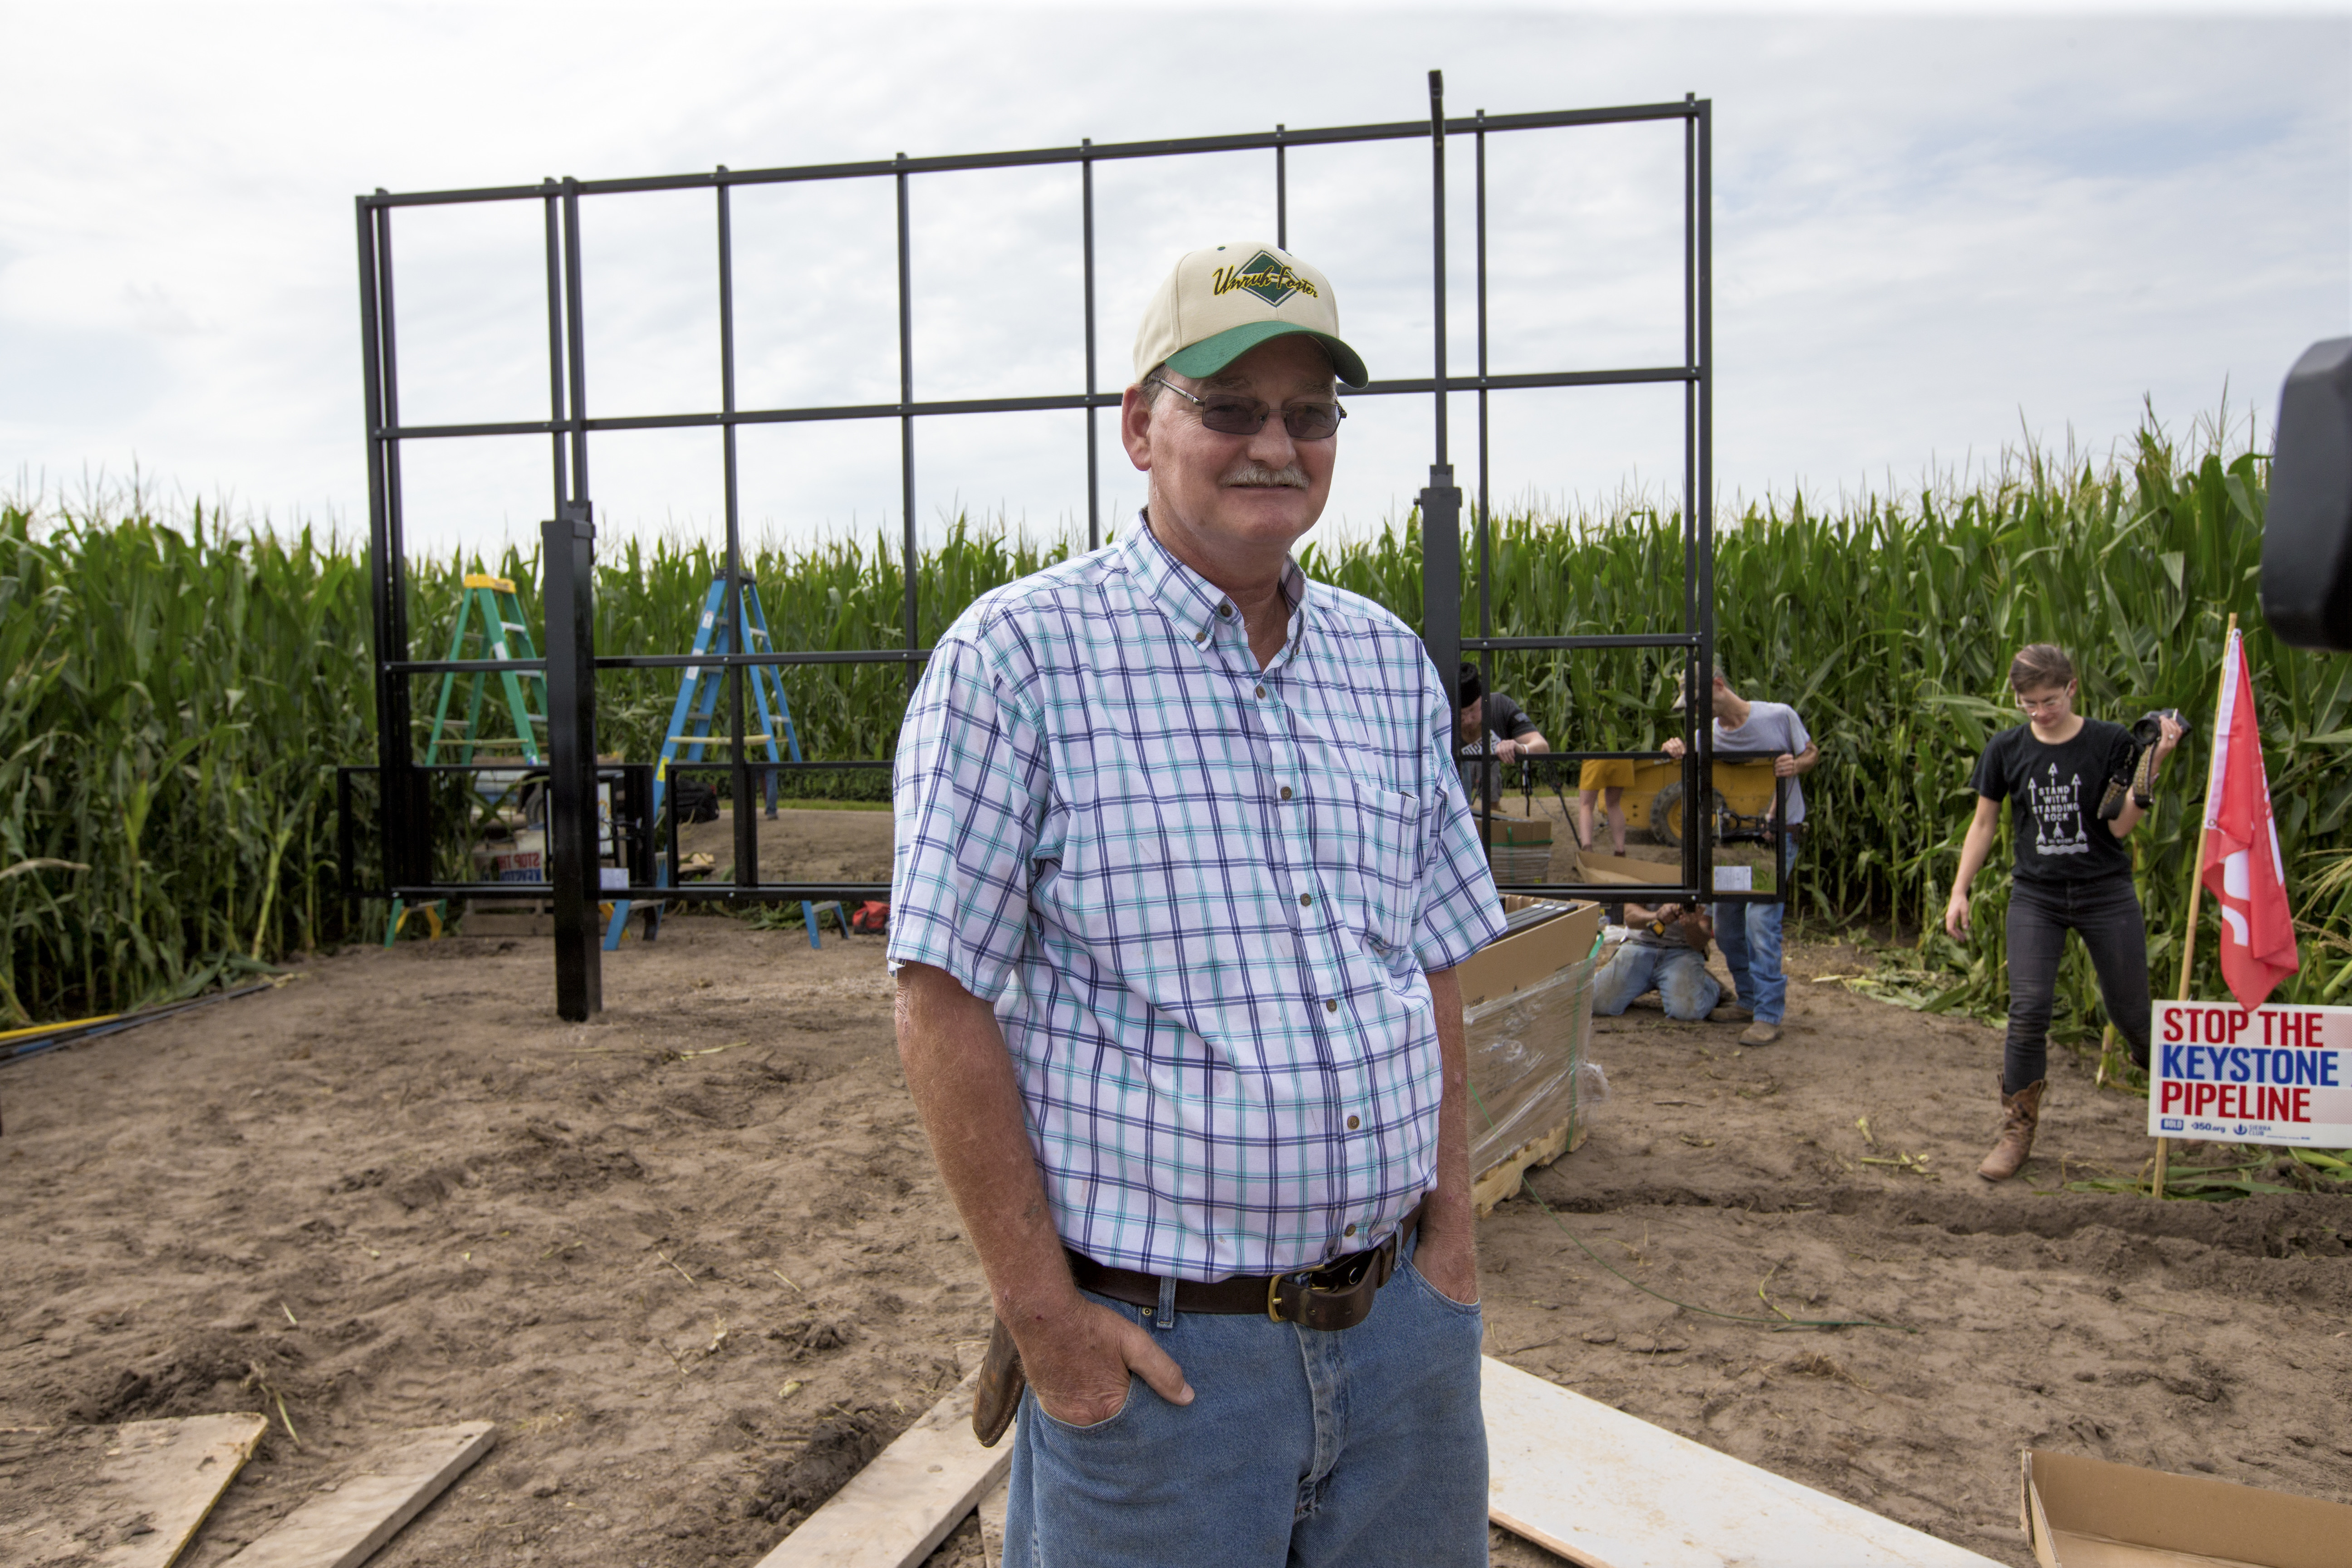 In this July 29, 2017 photo, corn farmer Jim Carlson of Silver Creek, Ne., waits to be interviewed by a television reporter while standing in front of solar panels he is building on his land in the proposed path of the Keystone XL pipeline. Despite new uncertainty over whether TransCanada, the builder of the Keystone XL pipeline will continue the project, longtime opponents in Nebraska aren't letting their guard down and neither are law enforcement officials who may have to react to protests if it wins approval. (AP Photo/Nati Harnik)